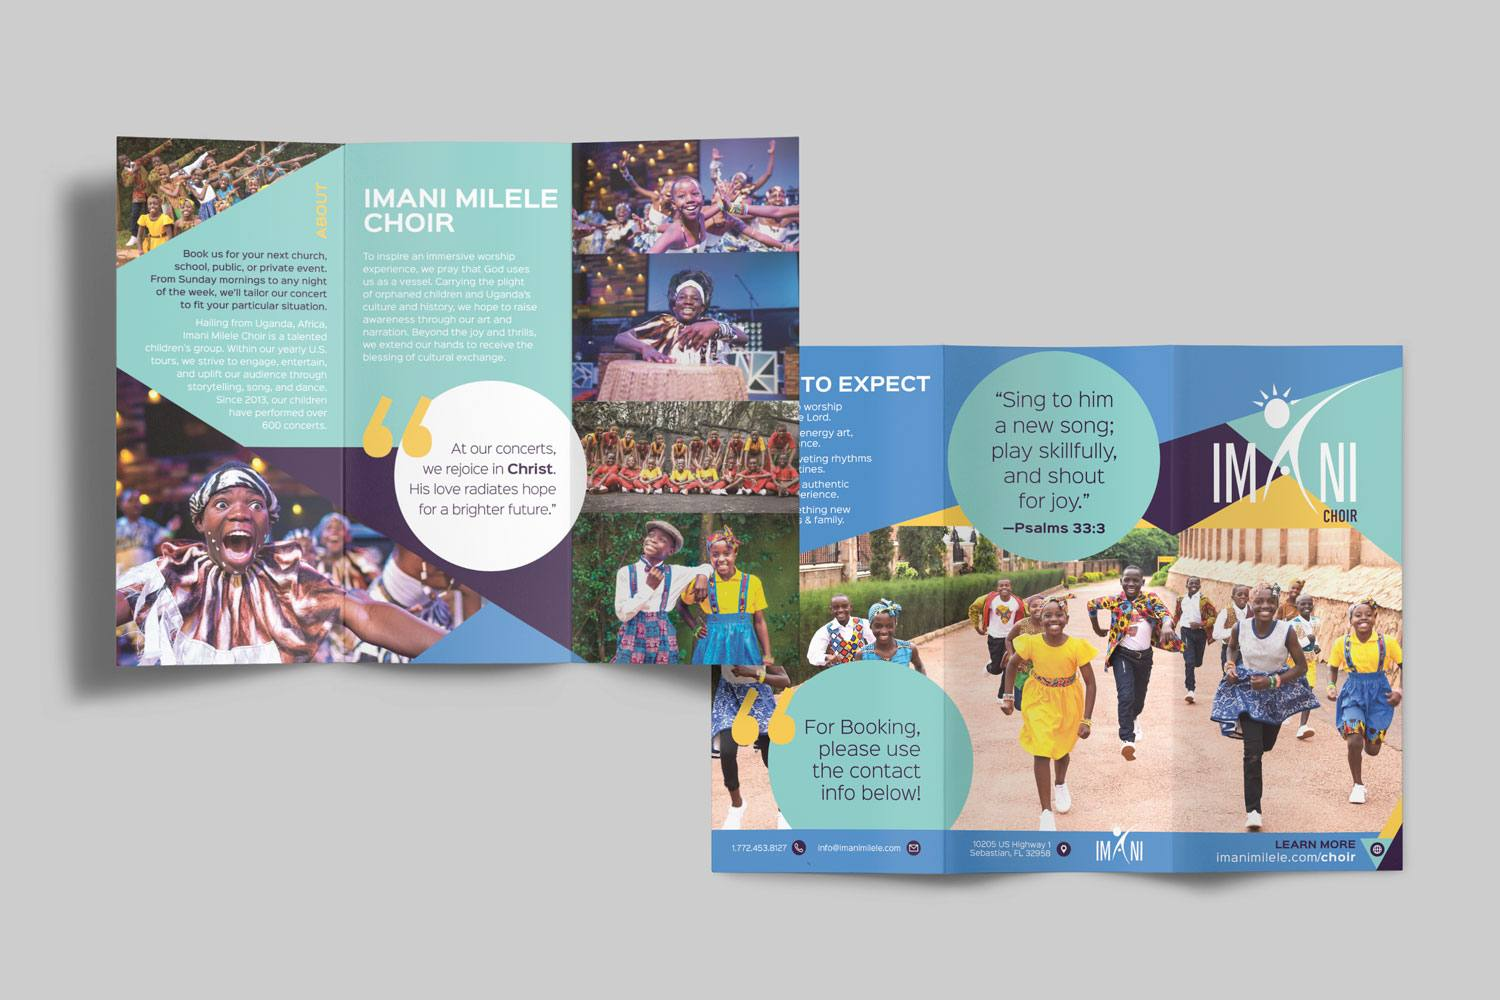 8.5 x 11 in. Non-Profit folded brochure design and printing by Abstract Union